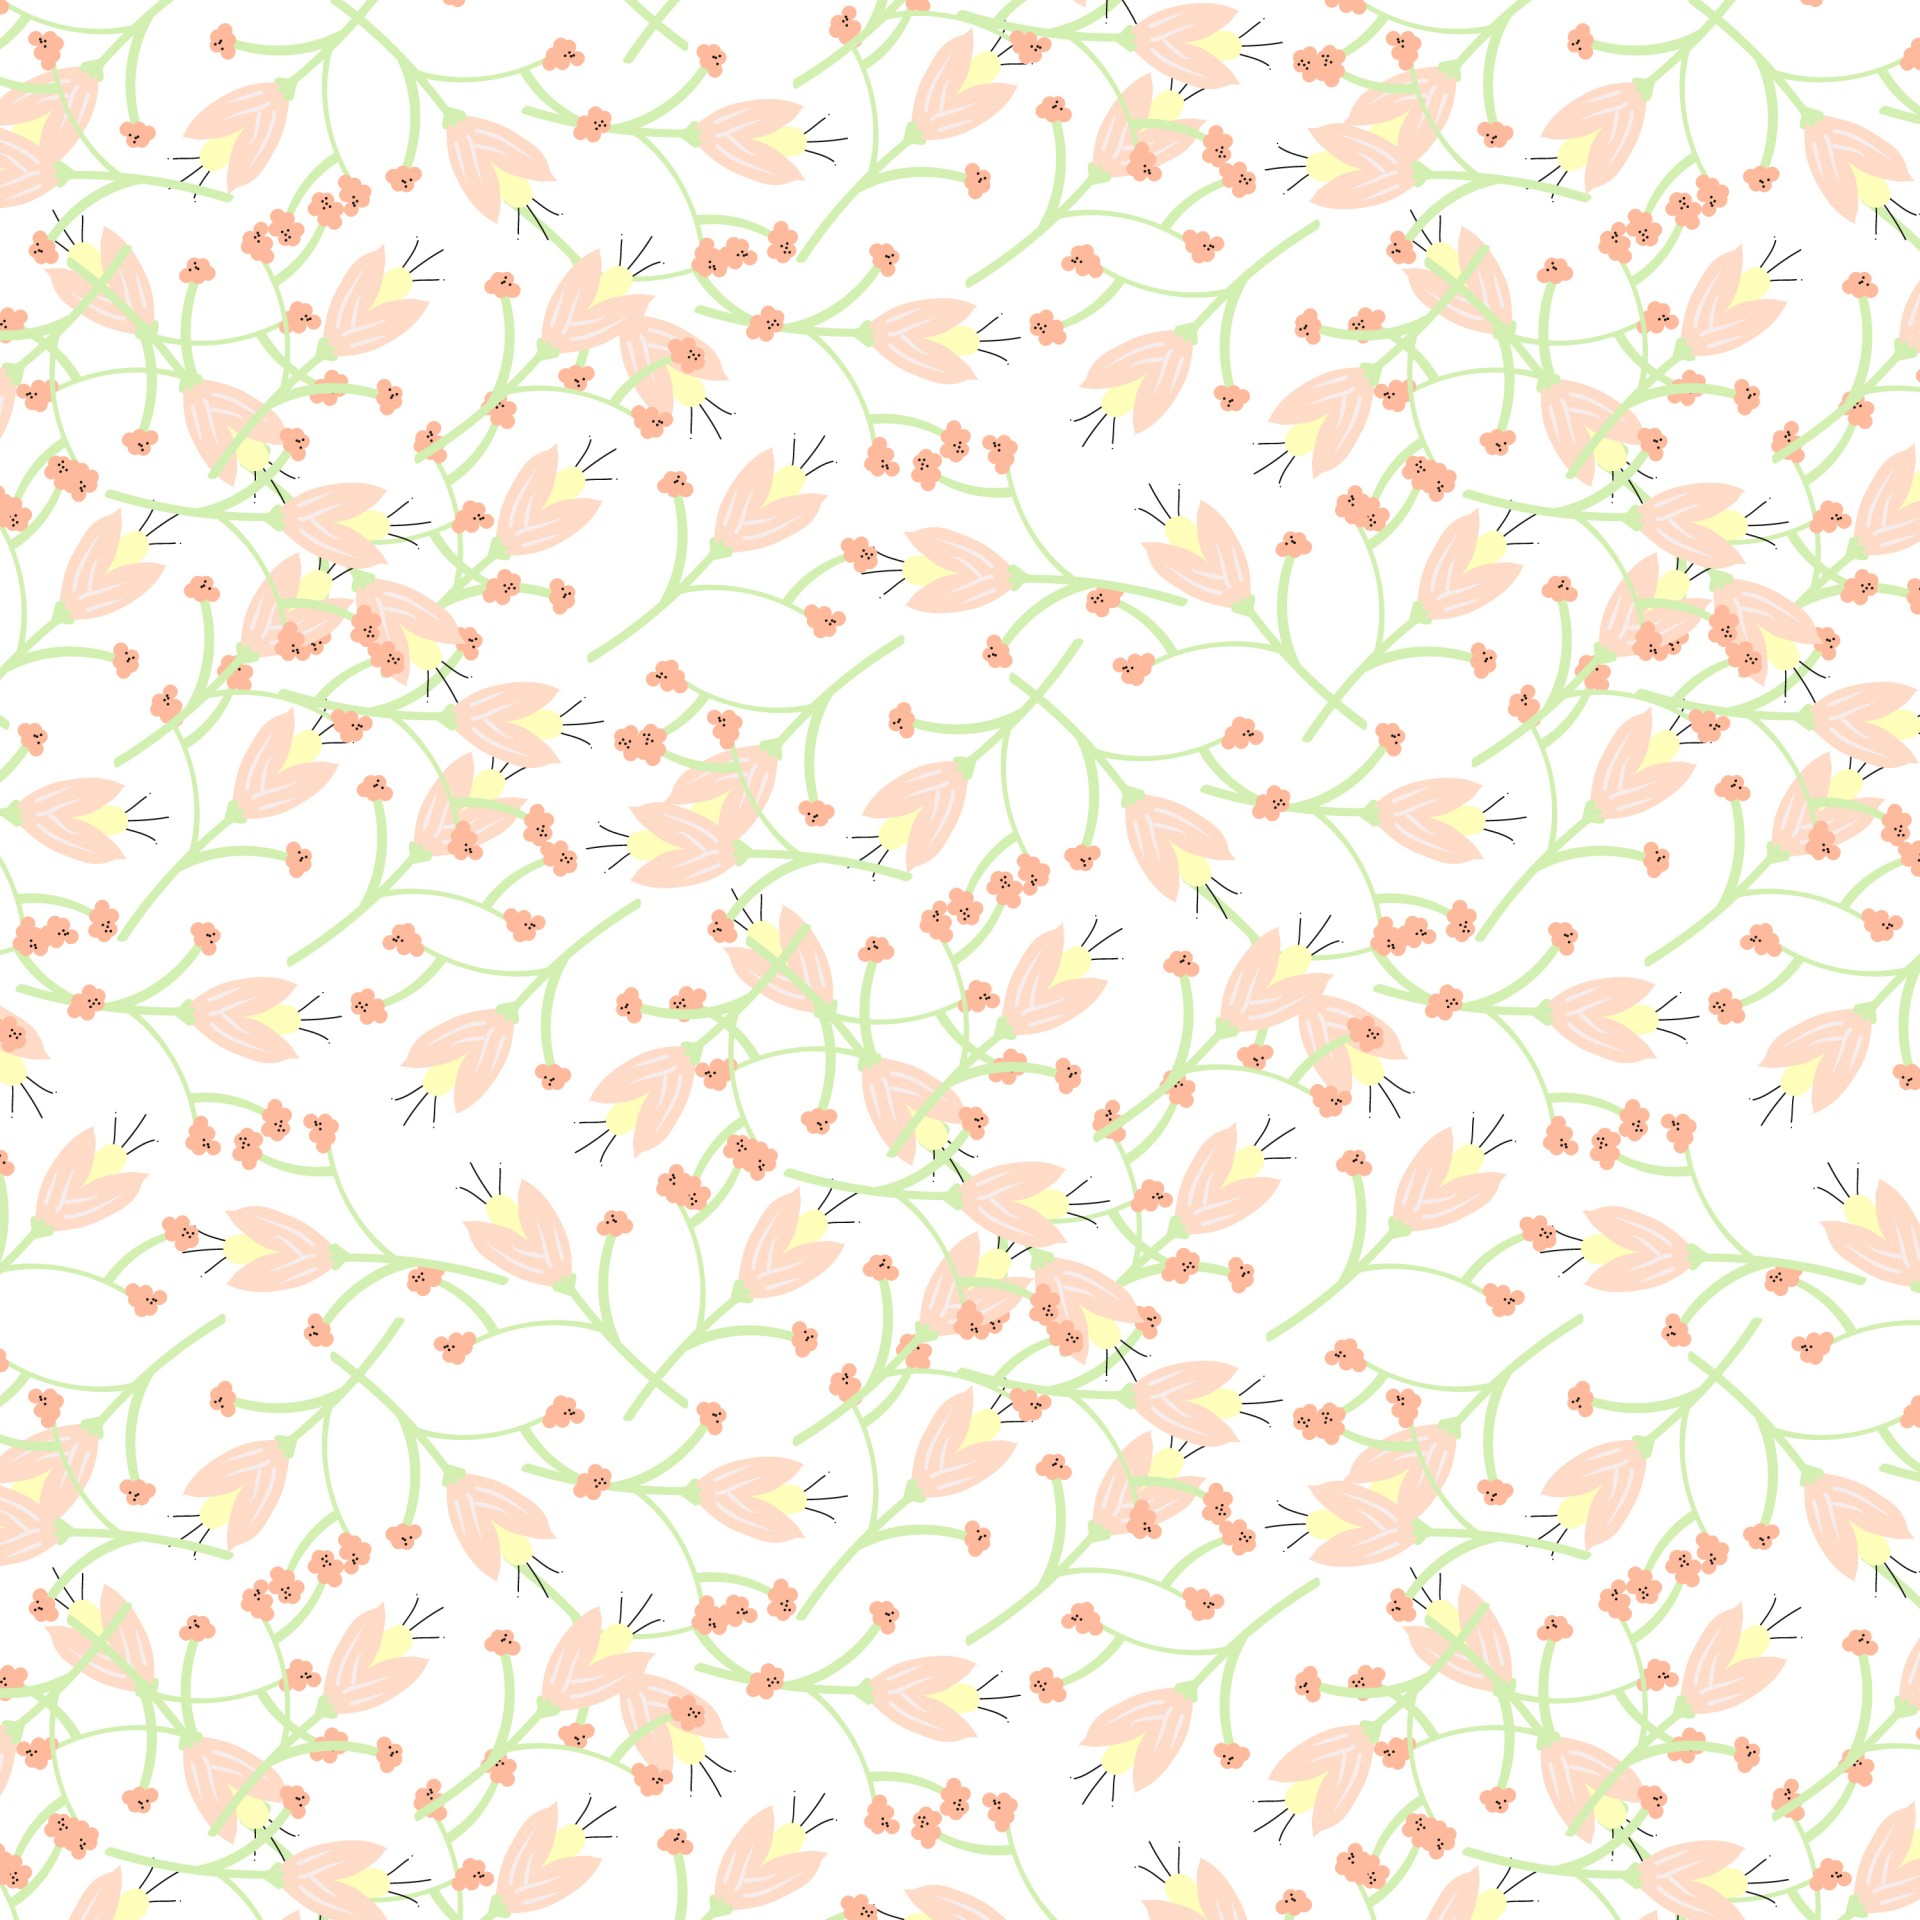 small-flowers-pattern-1440991901j7r